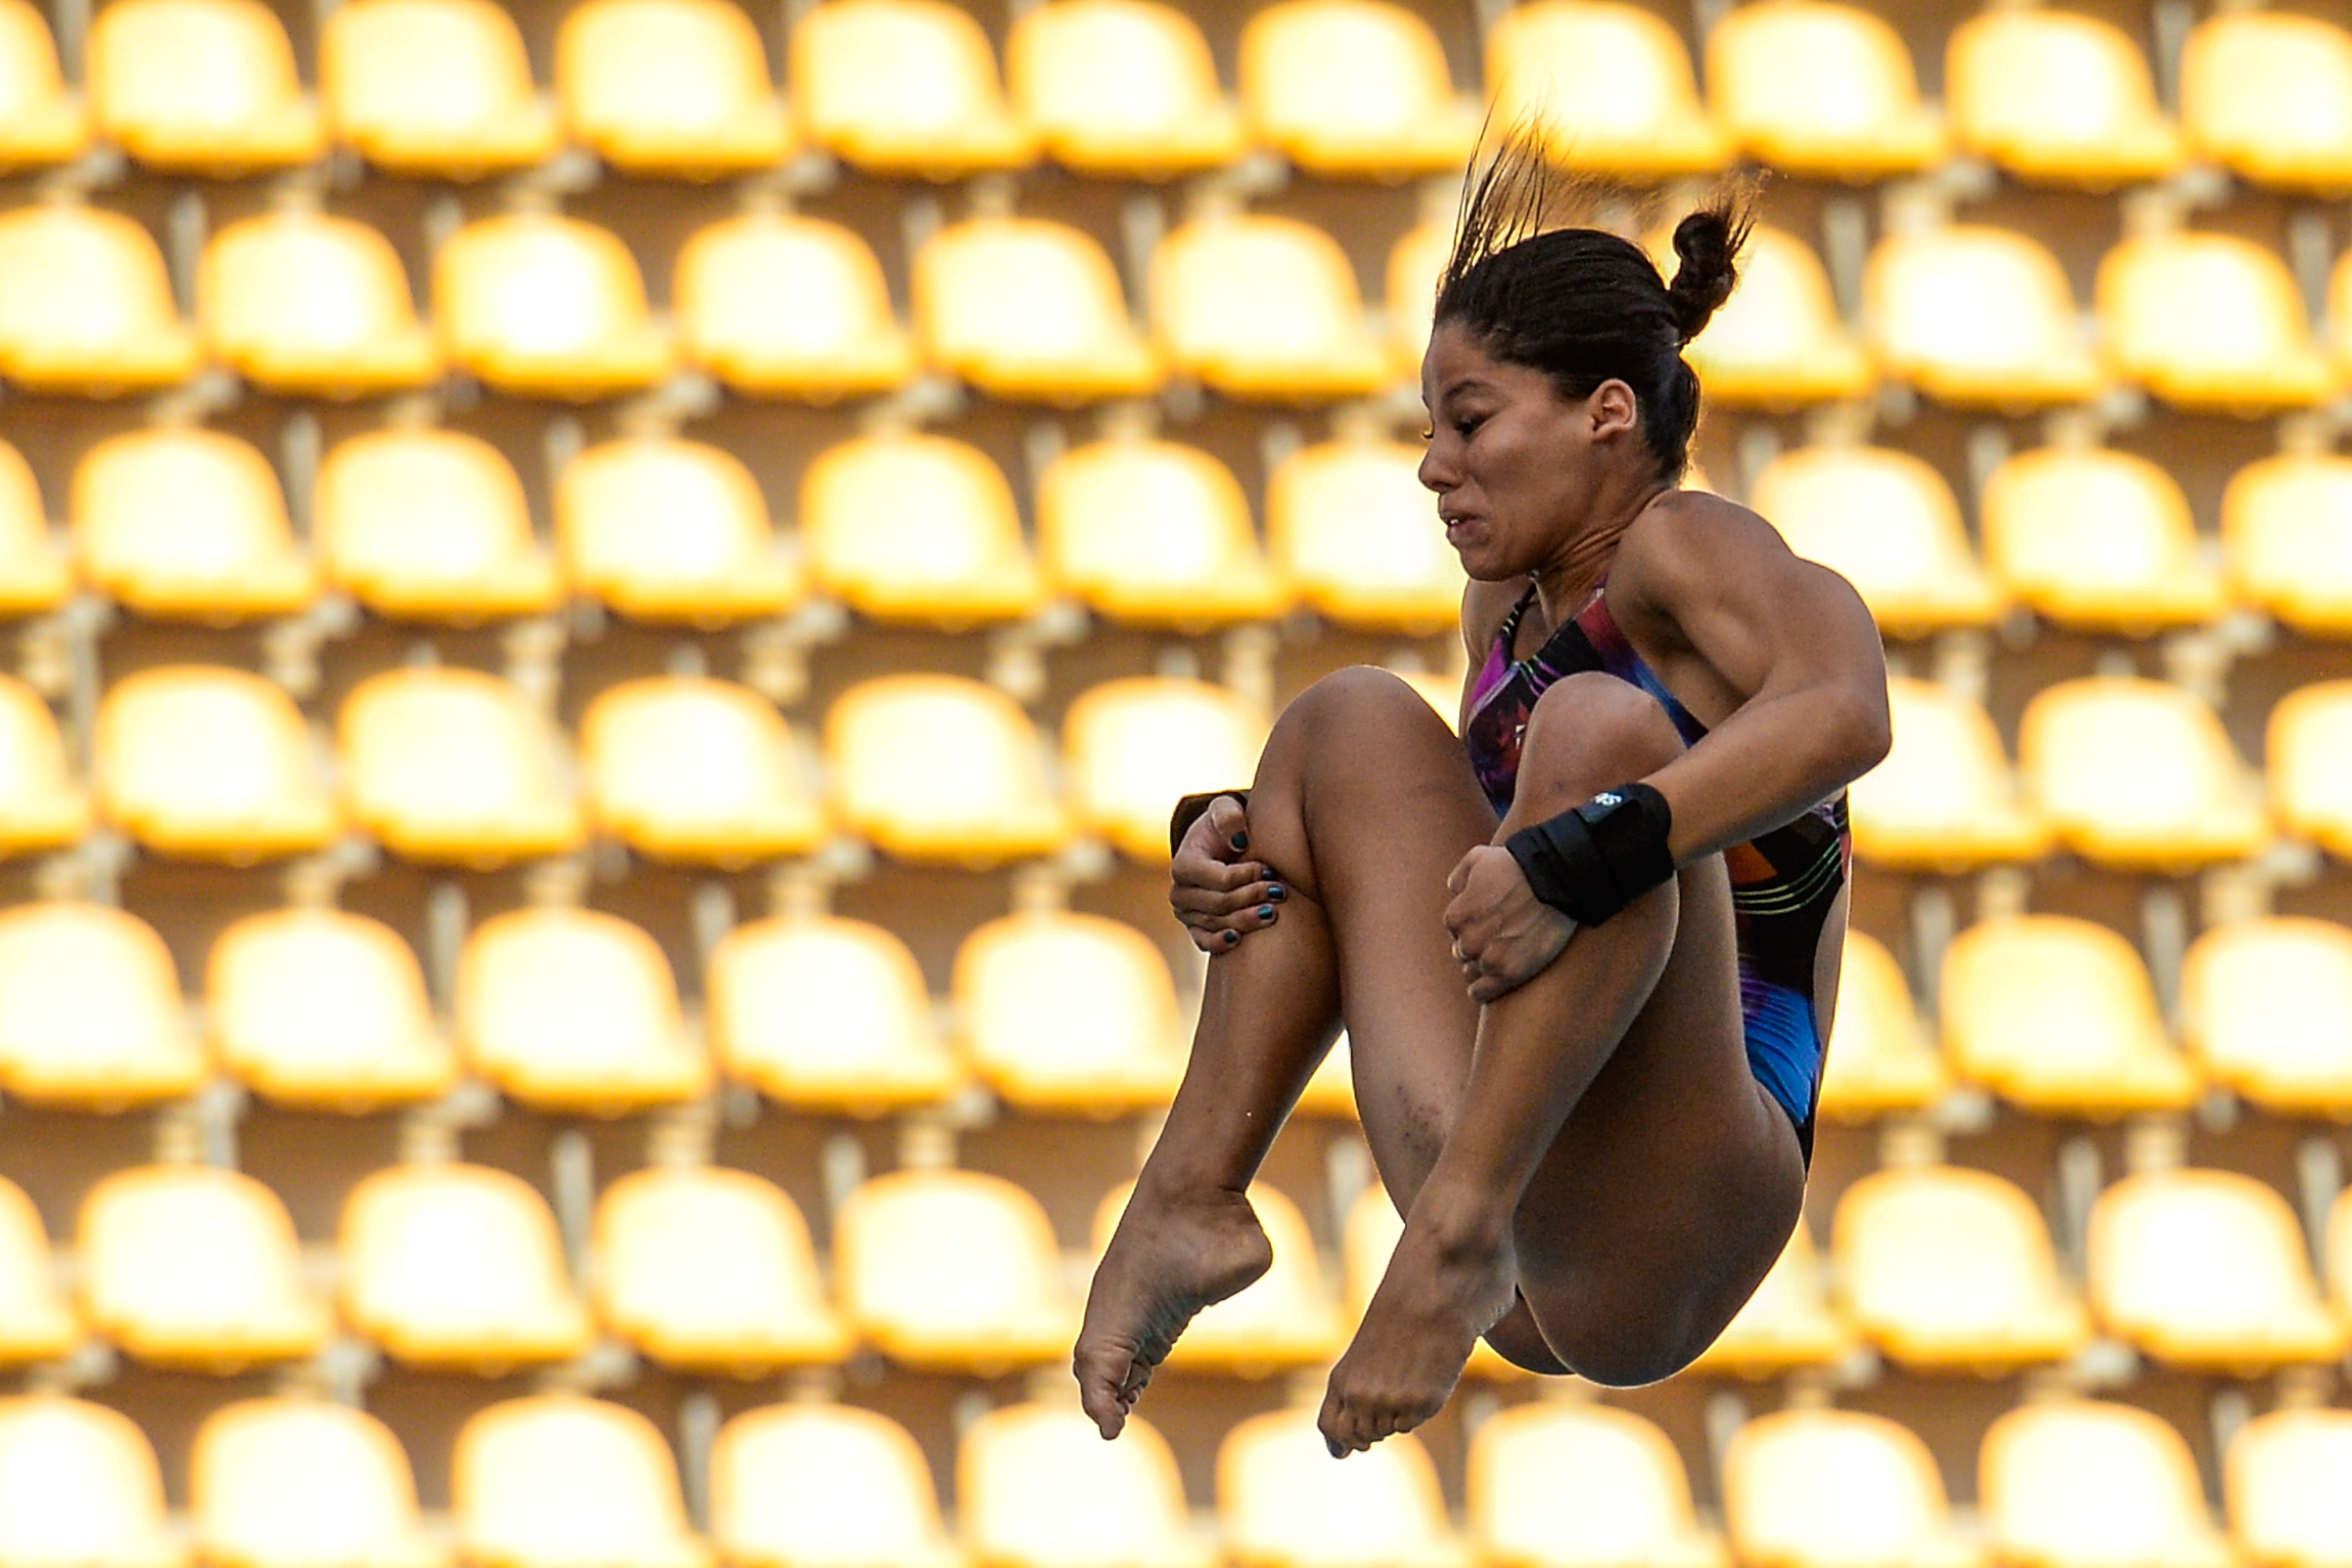 Olympic Diving Duo Split Up Amidst Rio Sex Scandal GettyImages 511438428